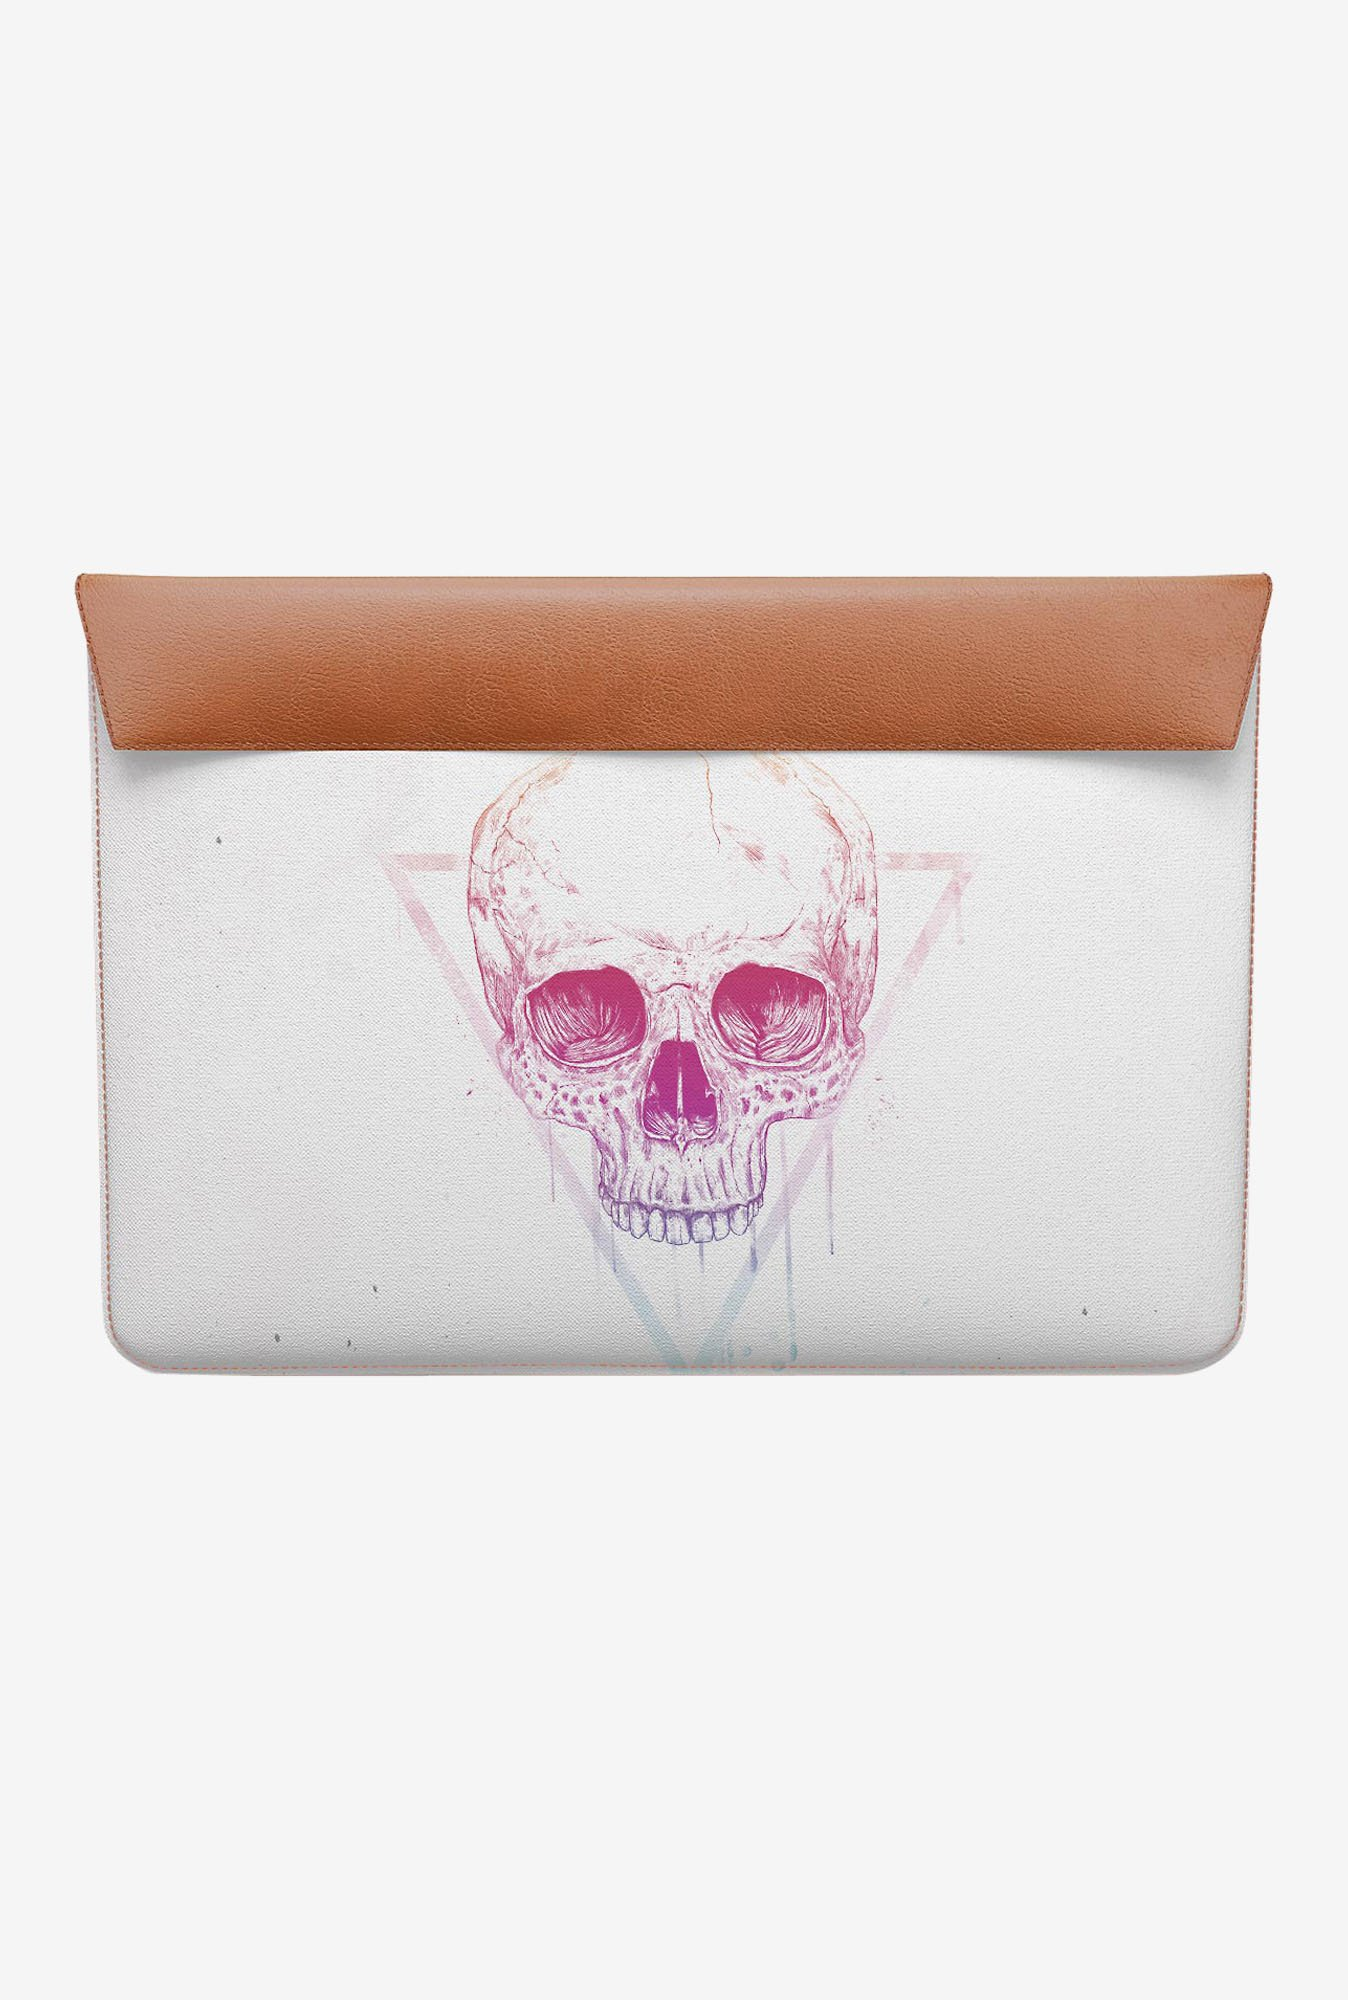 DailyObjects Skull Triangle MacBook Pro 15 Envelope Sleeve